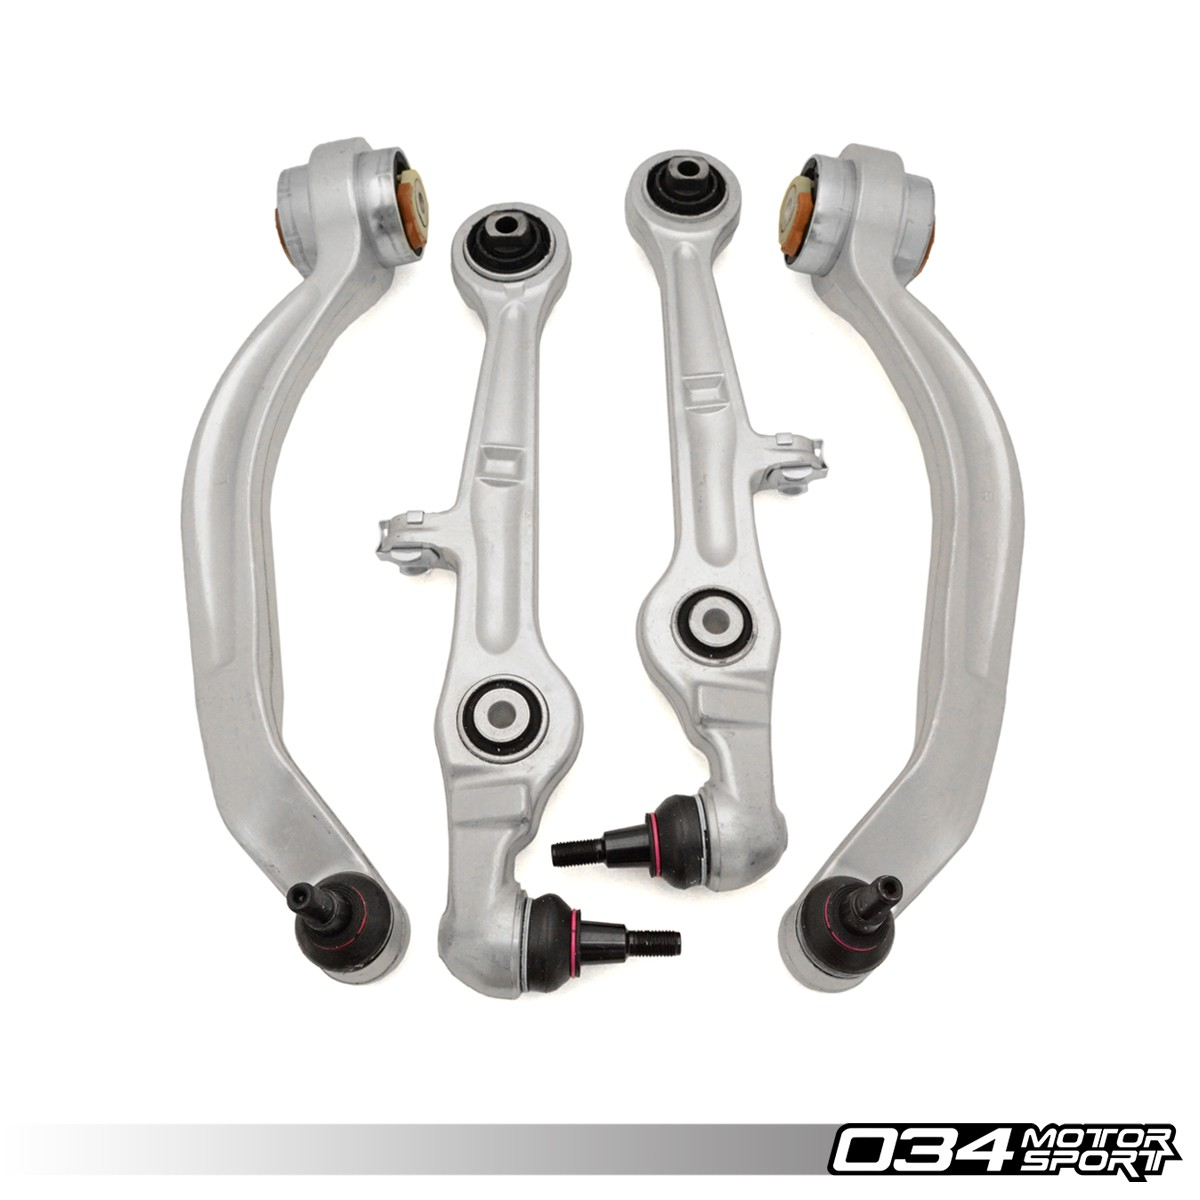 Density Line Lower Control Arm Kit for B6/B7 Audi A4/S4/RS4